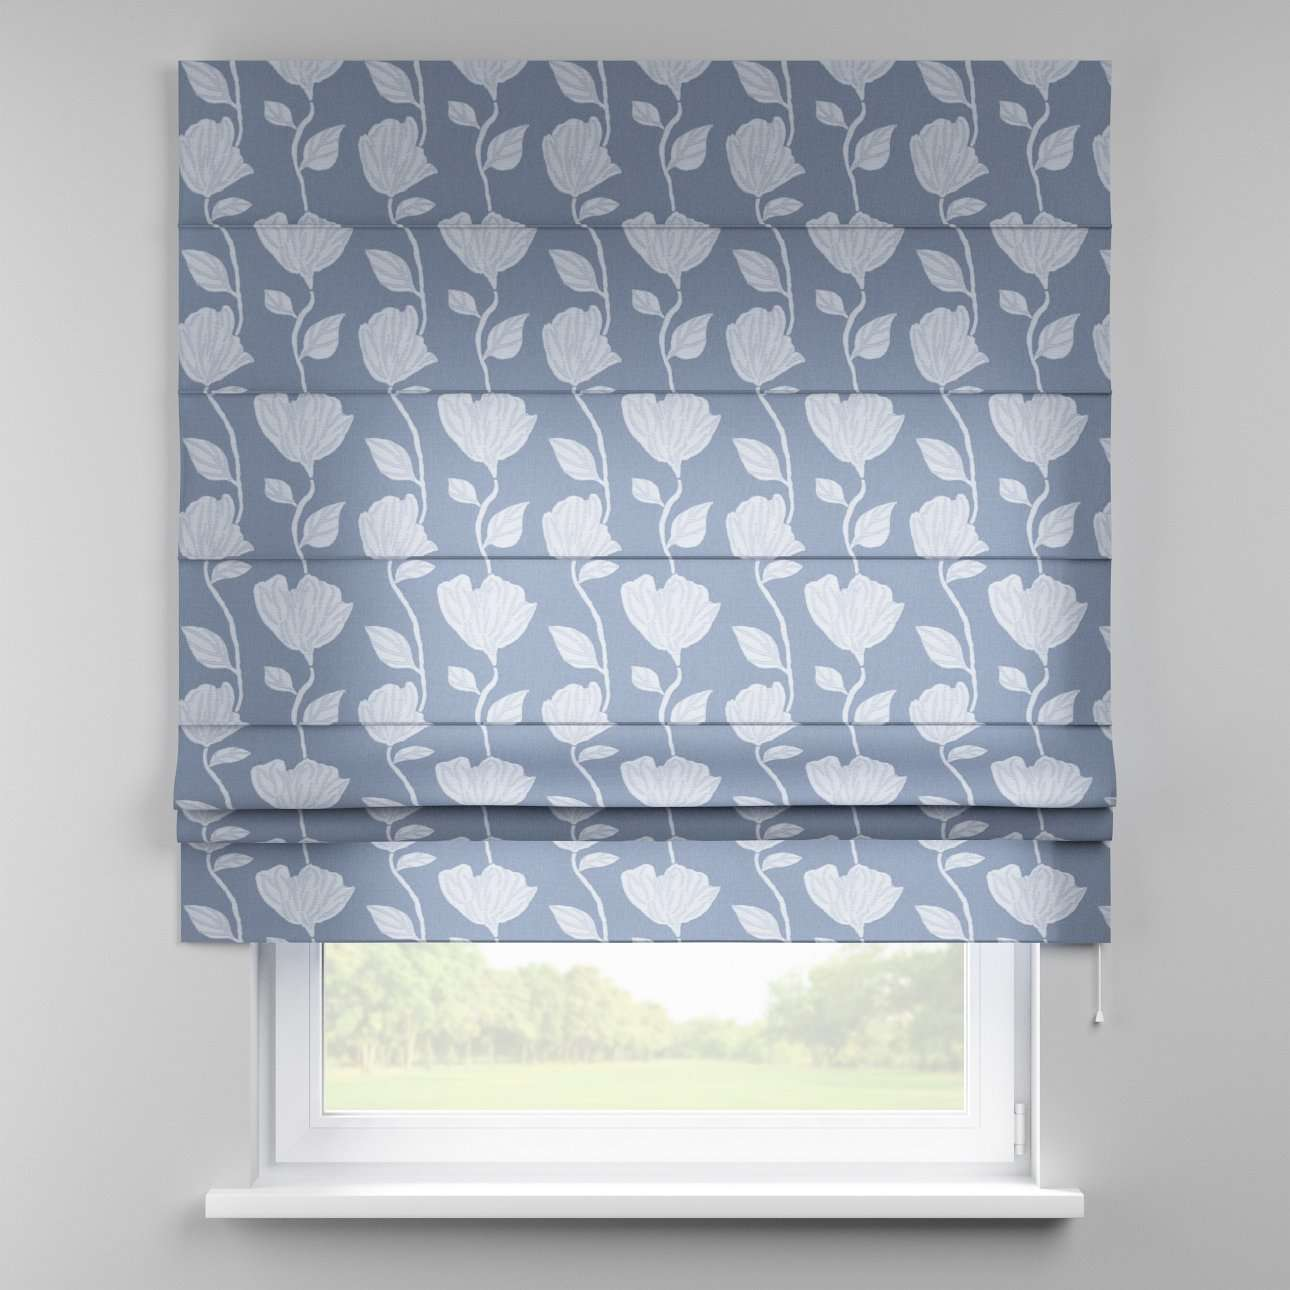 Padva roman blind  80 x 170 cm (31.5 x 67 inch) in collection Venice, fabric: 140-61